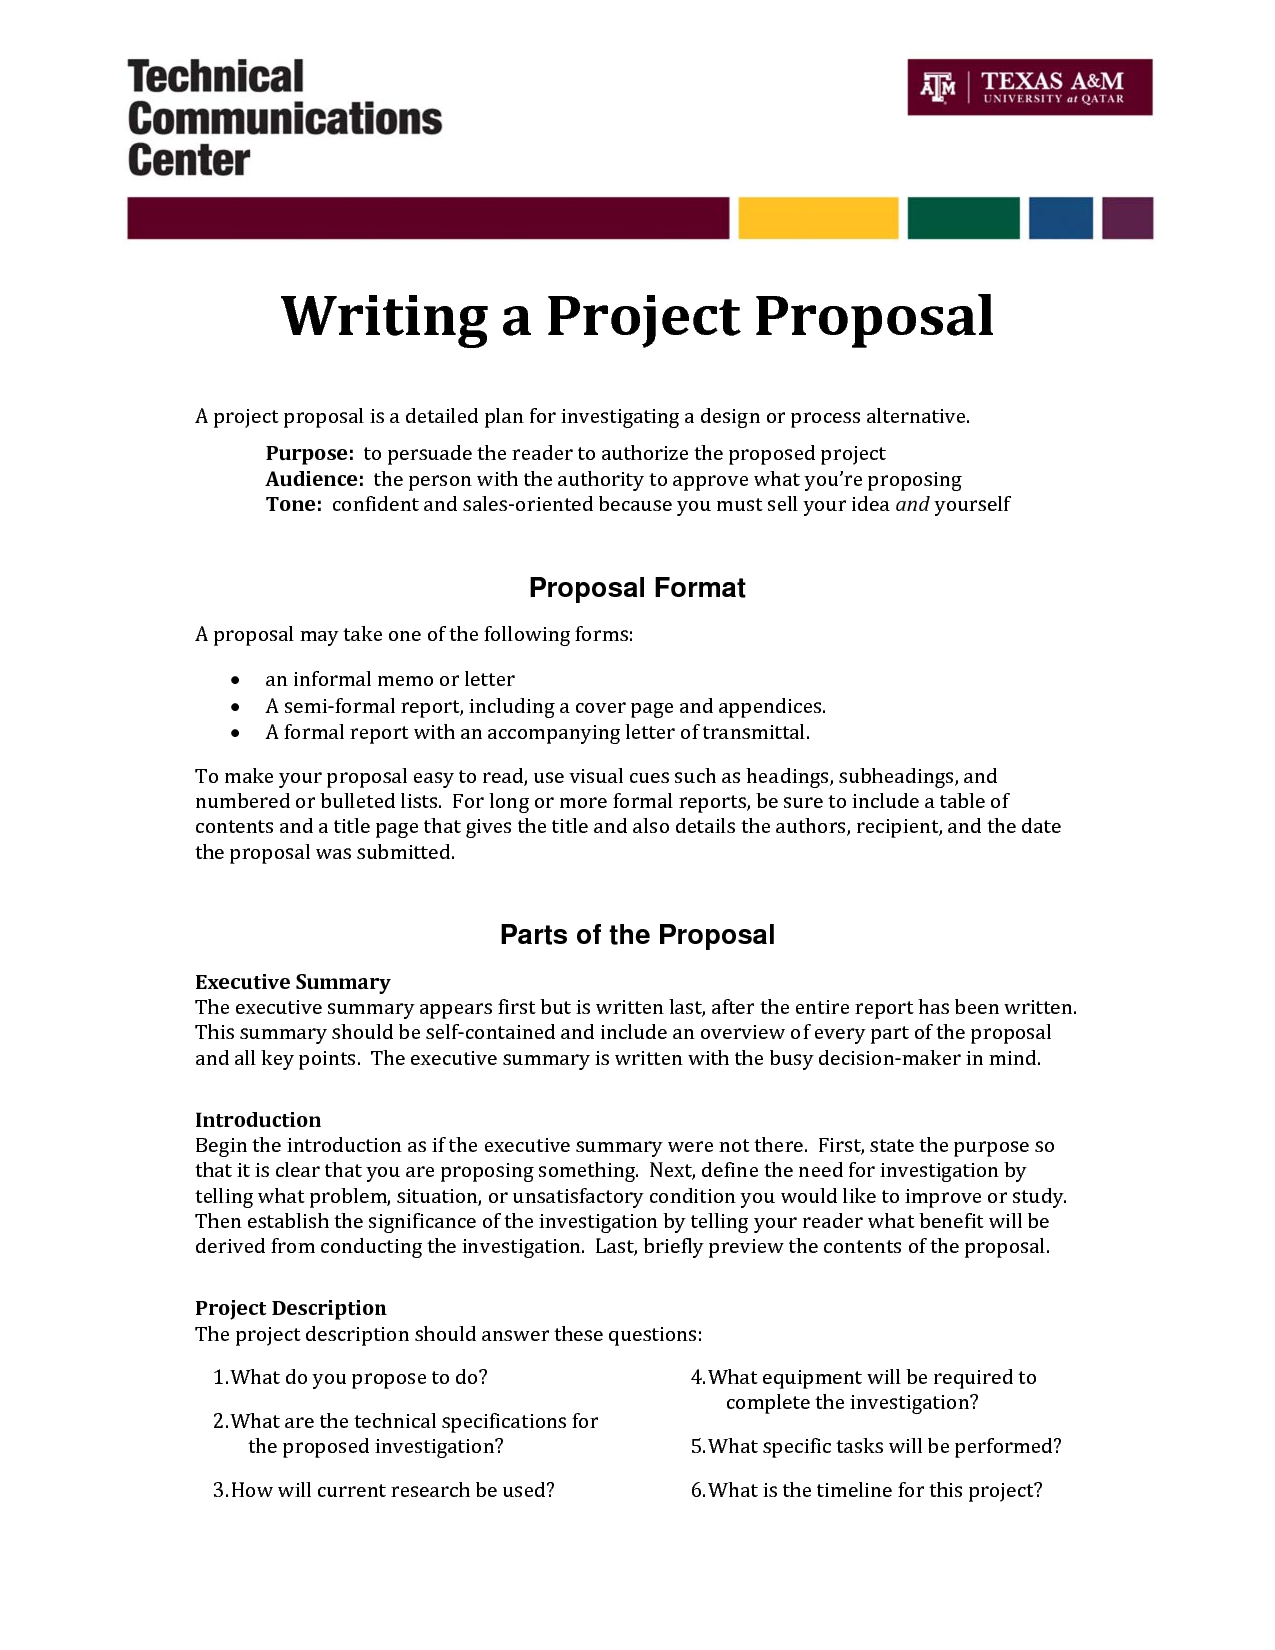 how to make a project proposal template how to make a project proposal